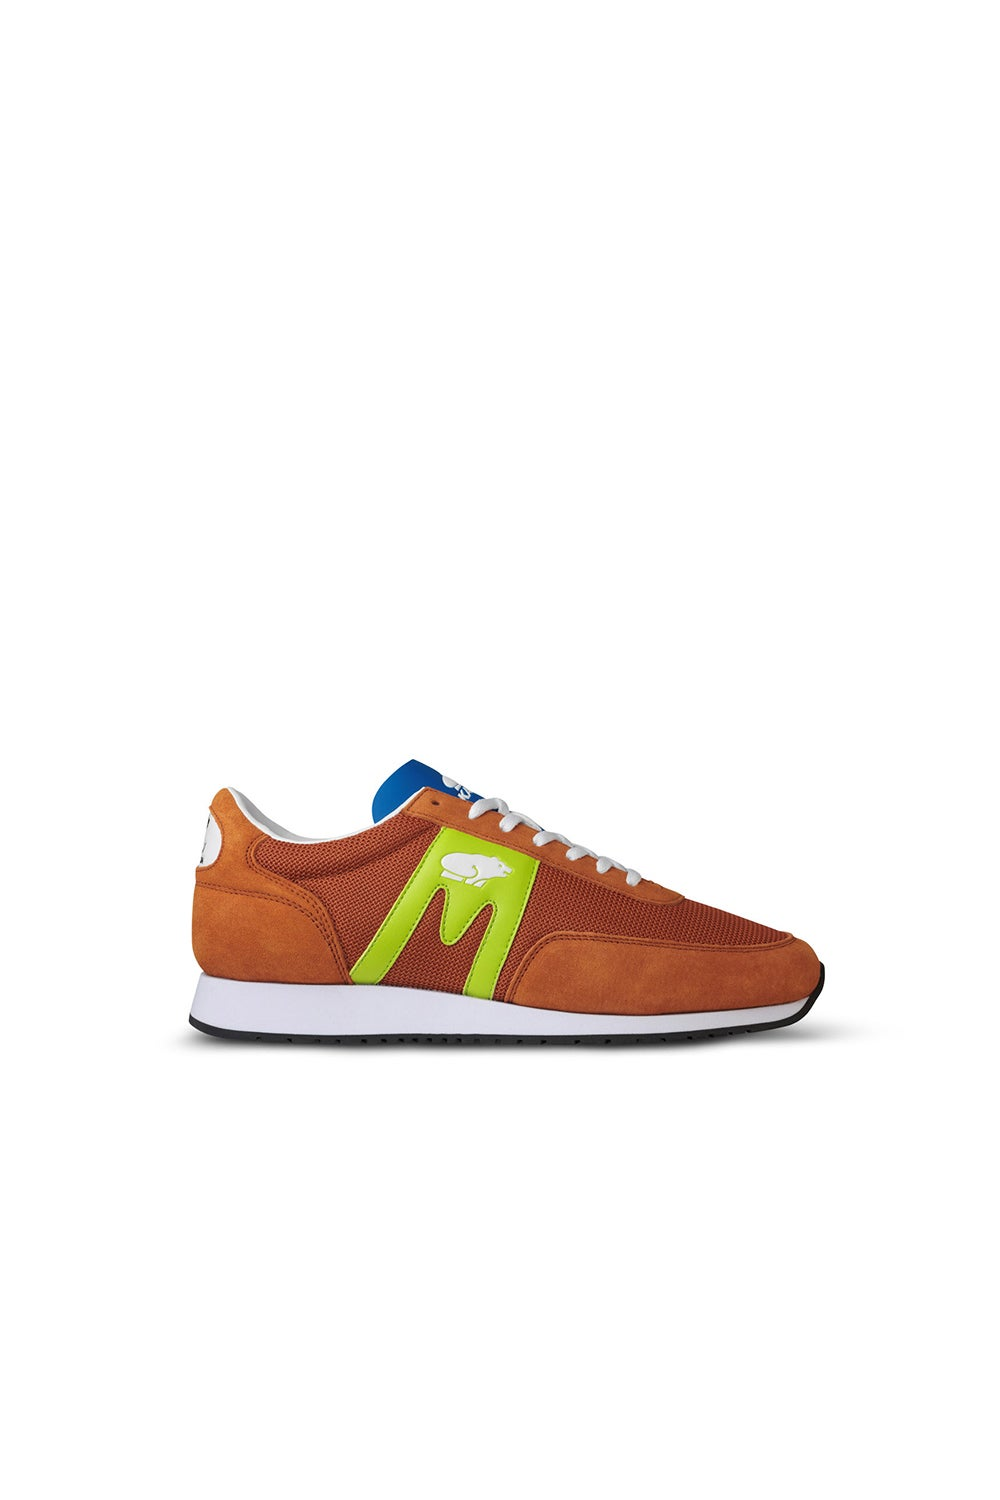 Karhu Albatross Cinnamon Stick/Lime Punch